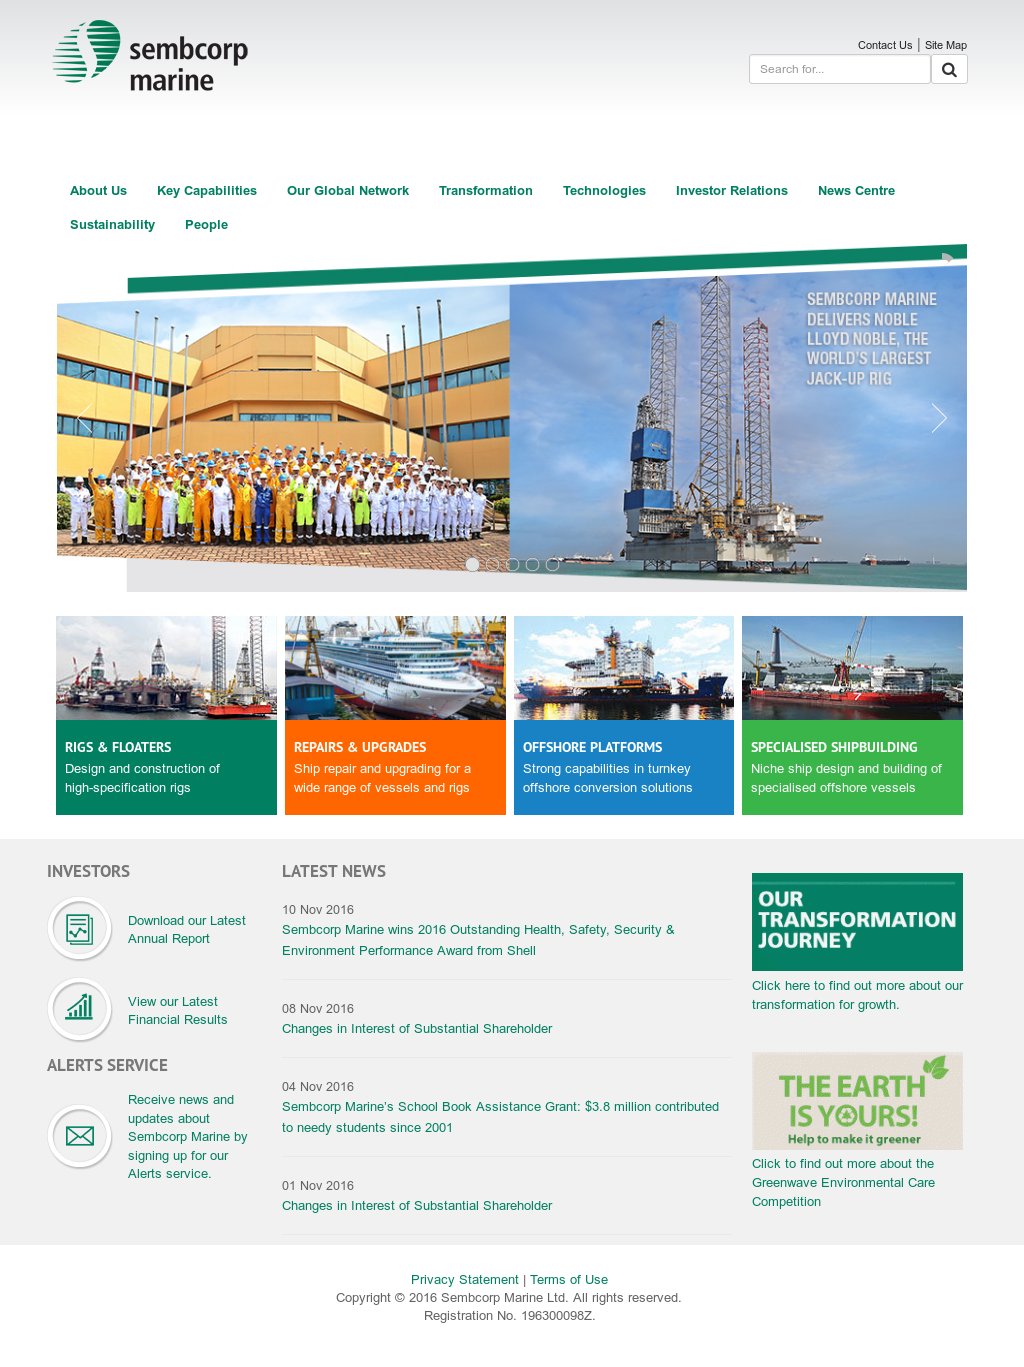 Sembcorp Marine Competitors, Revenue and Employees - Owler